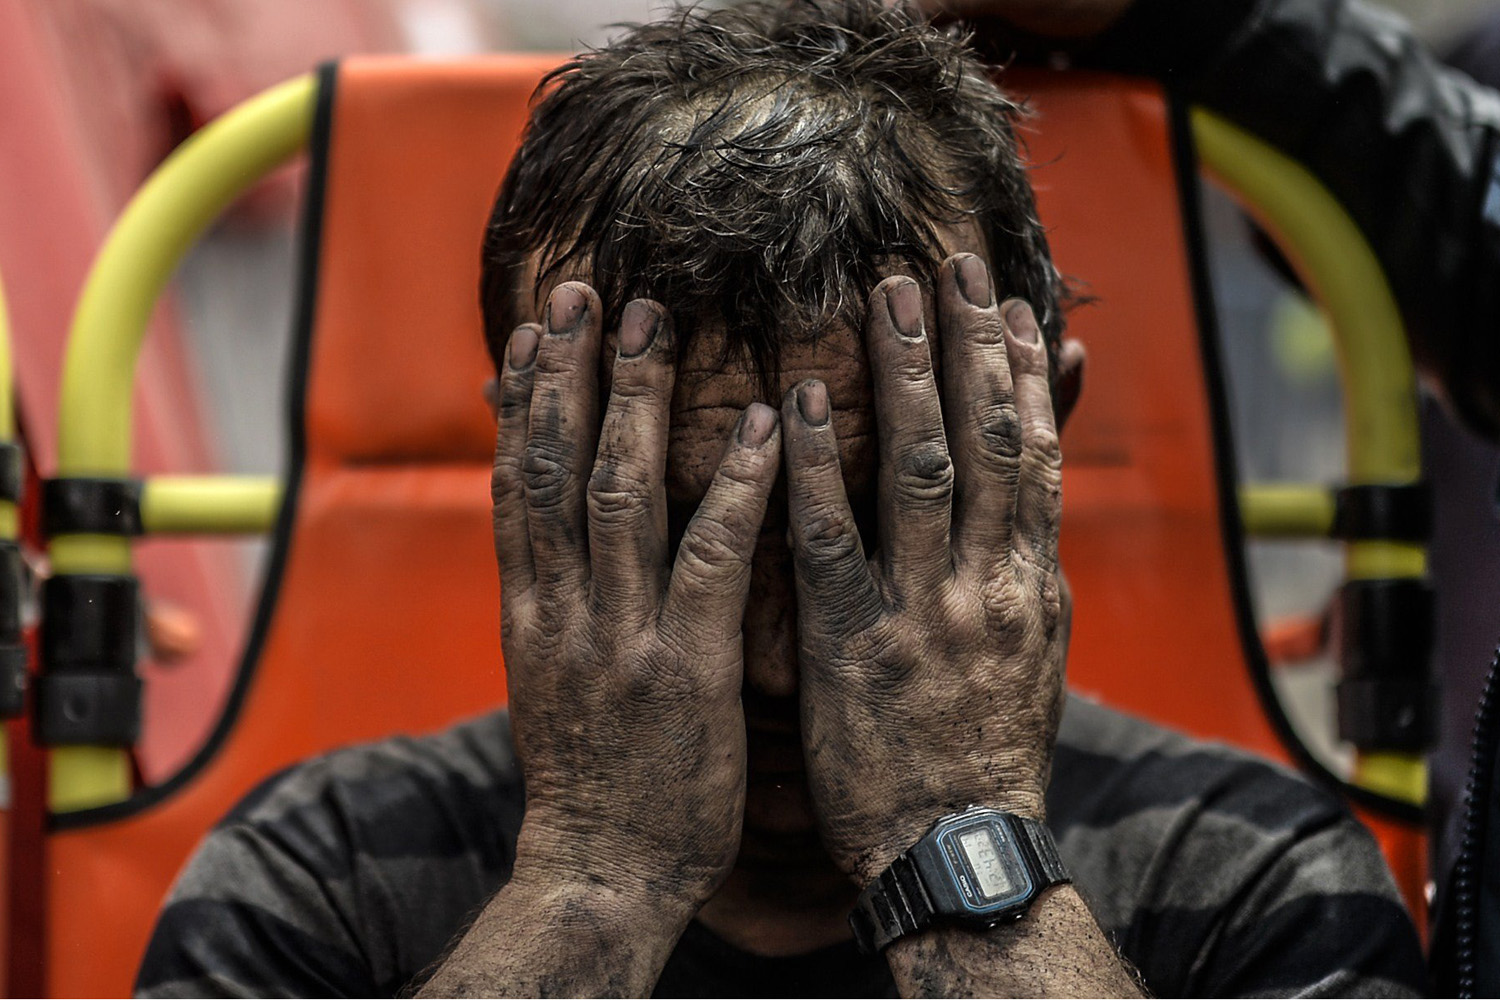 A miner reacts after being affected with toxic gas while searching for co-workers who remain trapped underground the western Turkish province of Manisa, May 14, 2014.